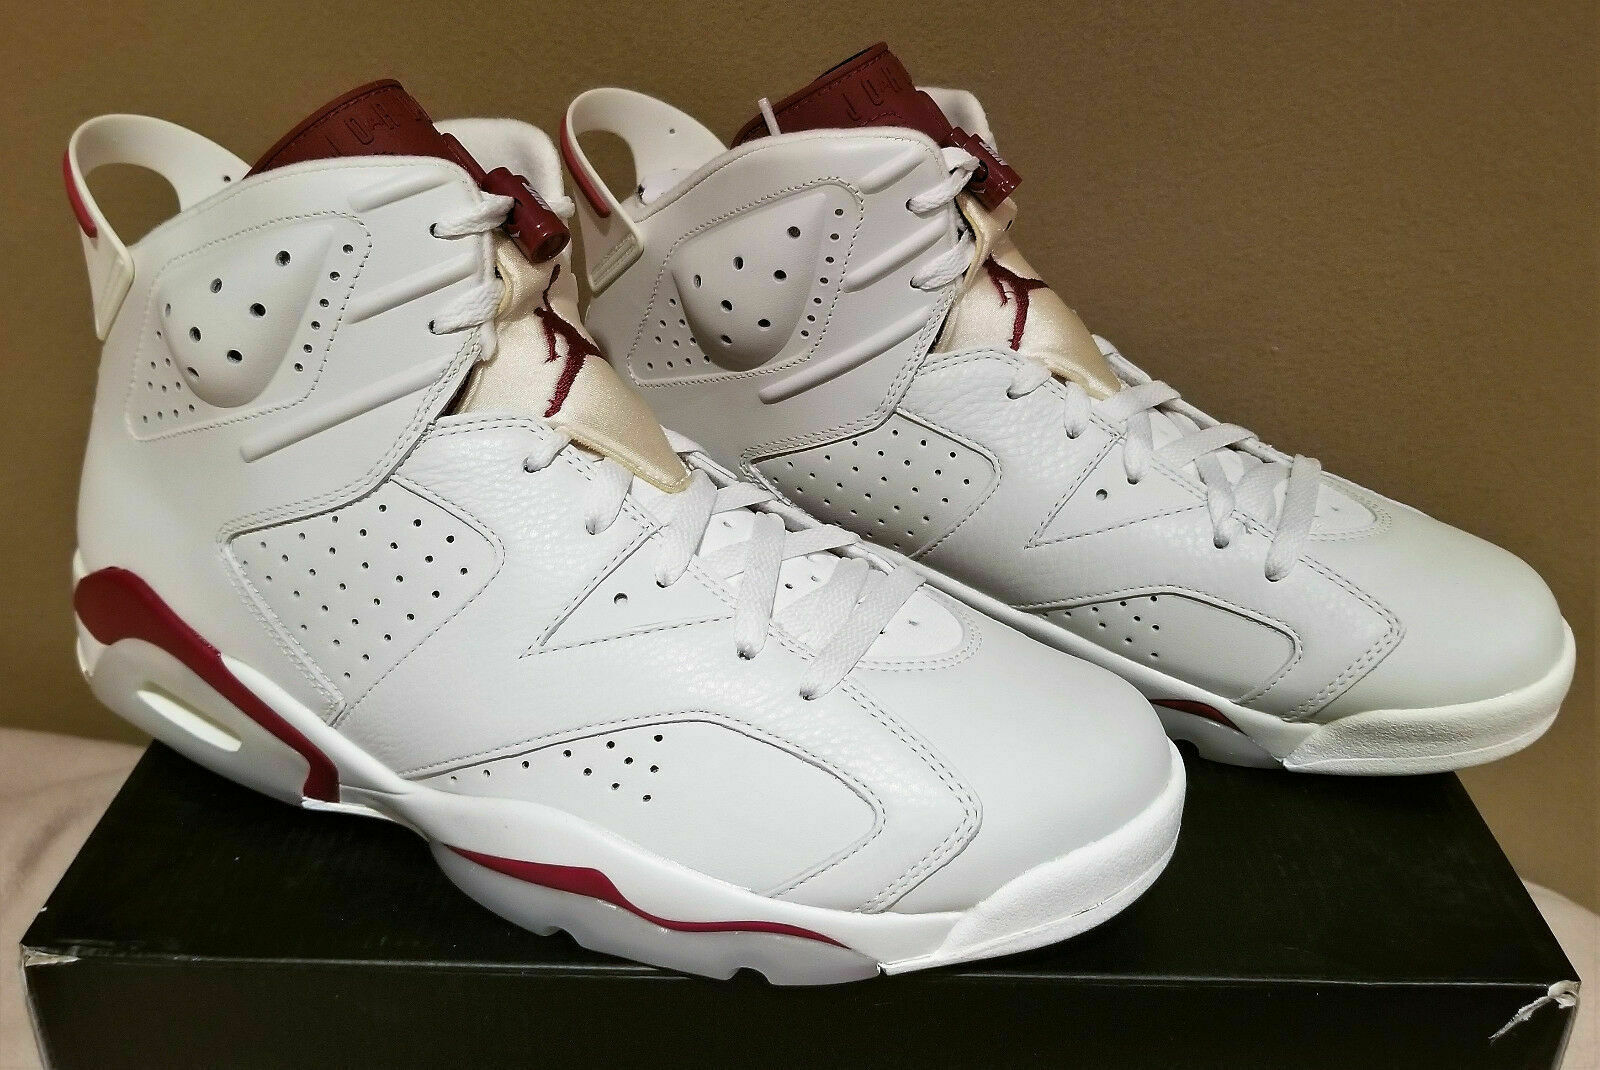 34897a8e486d Nike Air Jordan 6 Retro VI 2015 off White Maroon 384664-116 DS Size ...